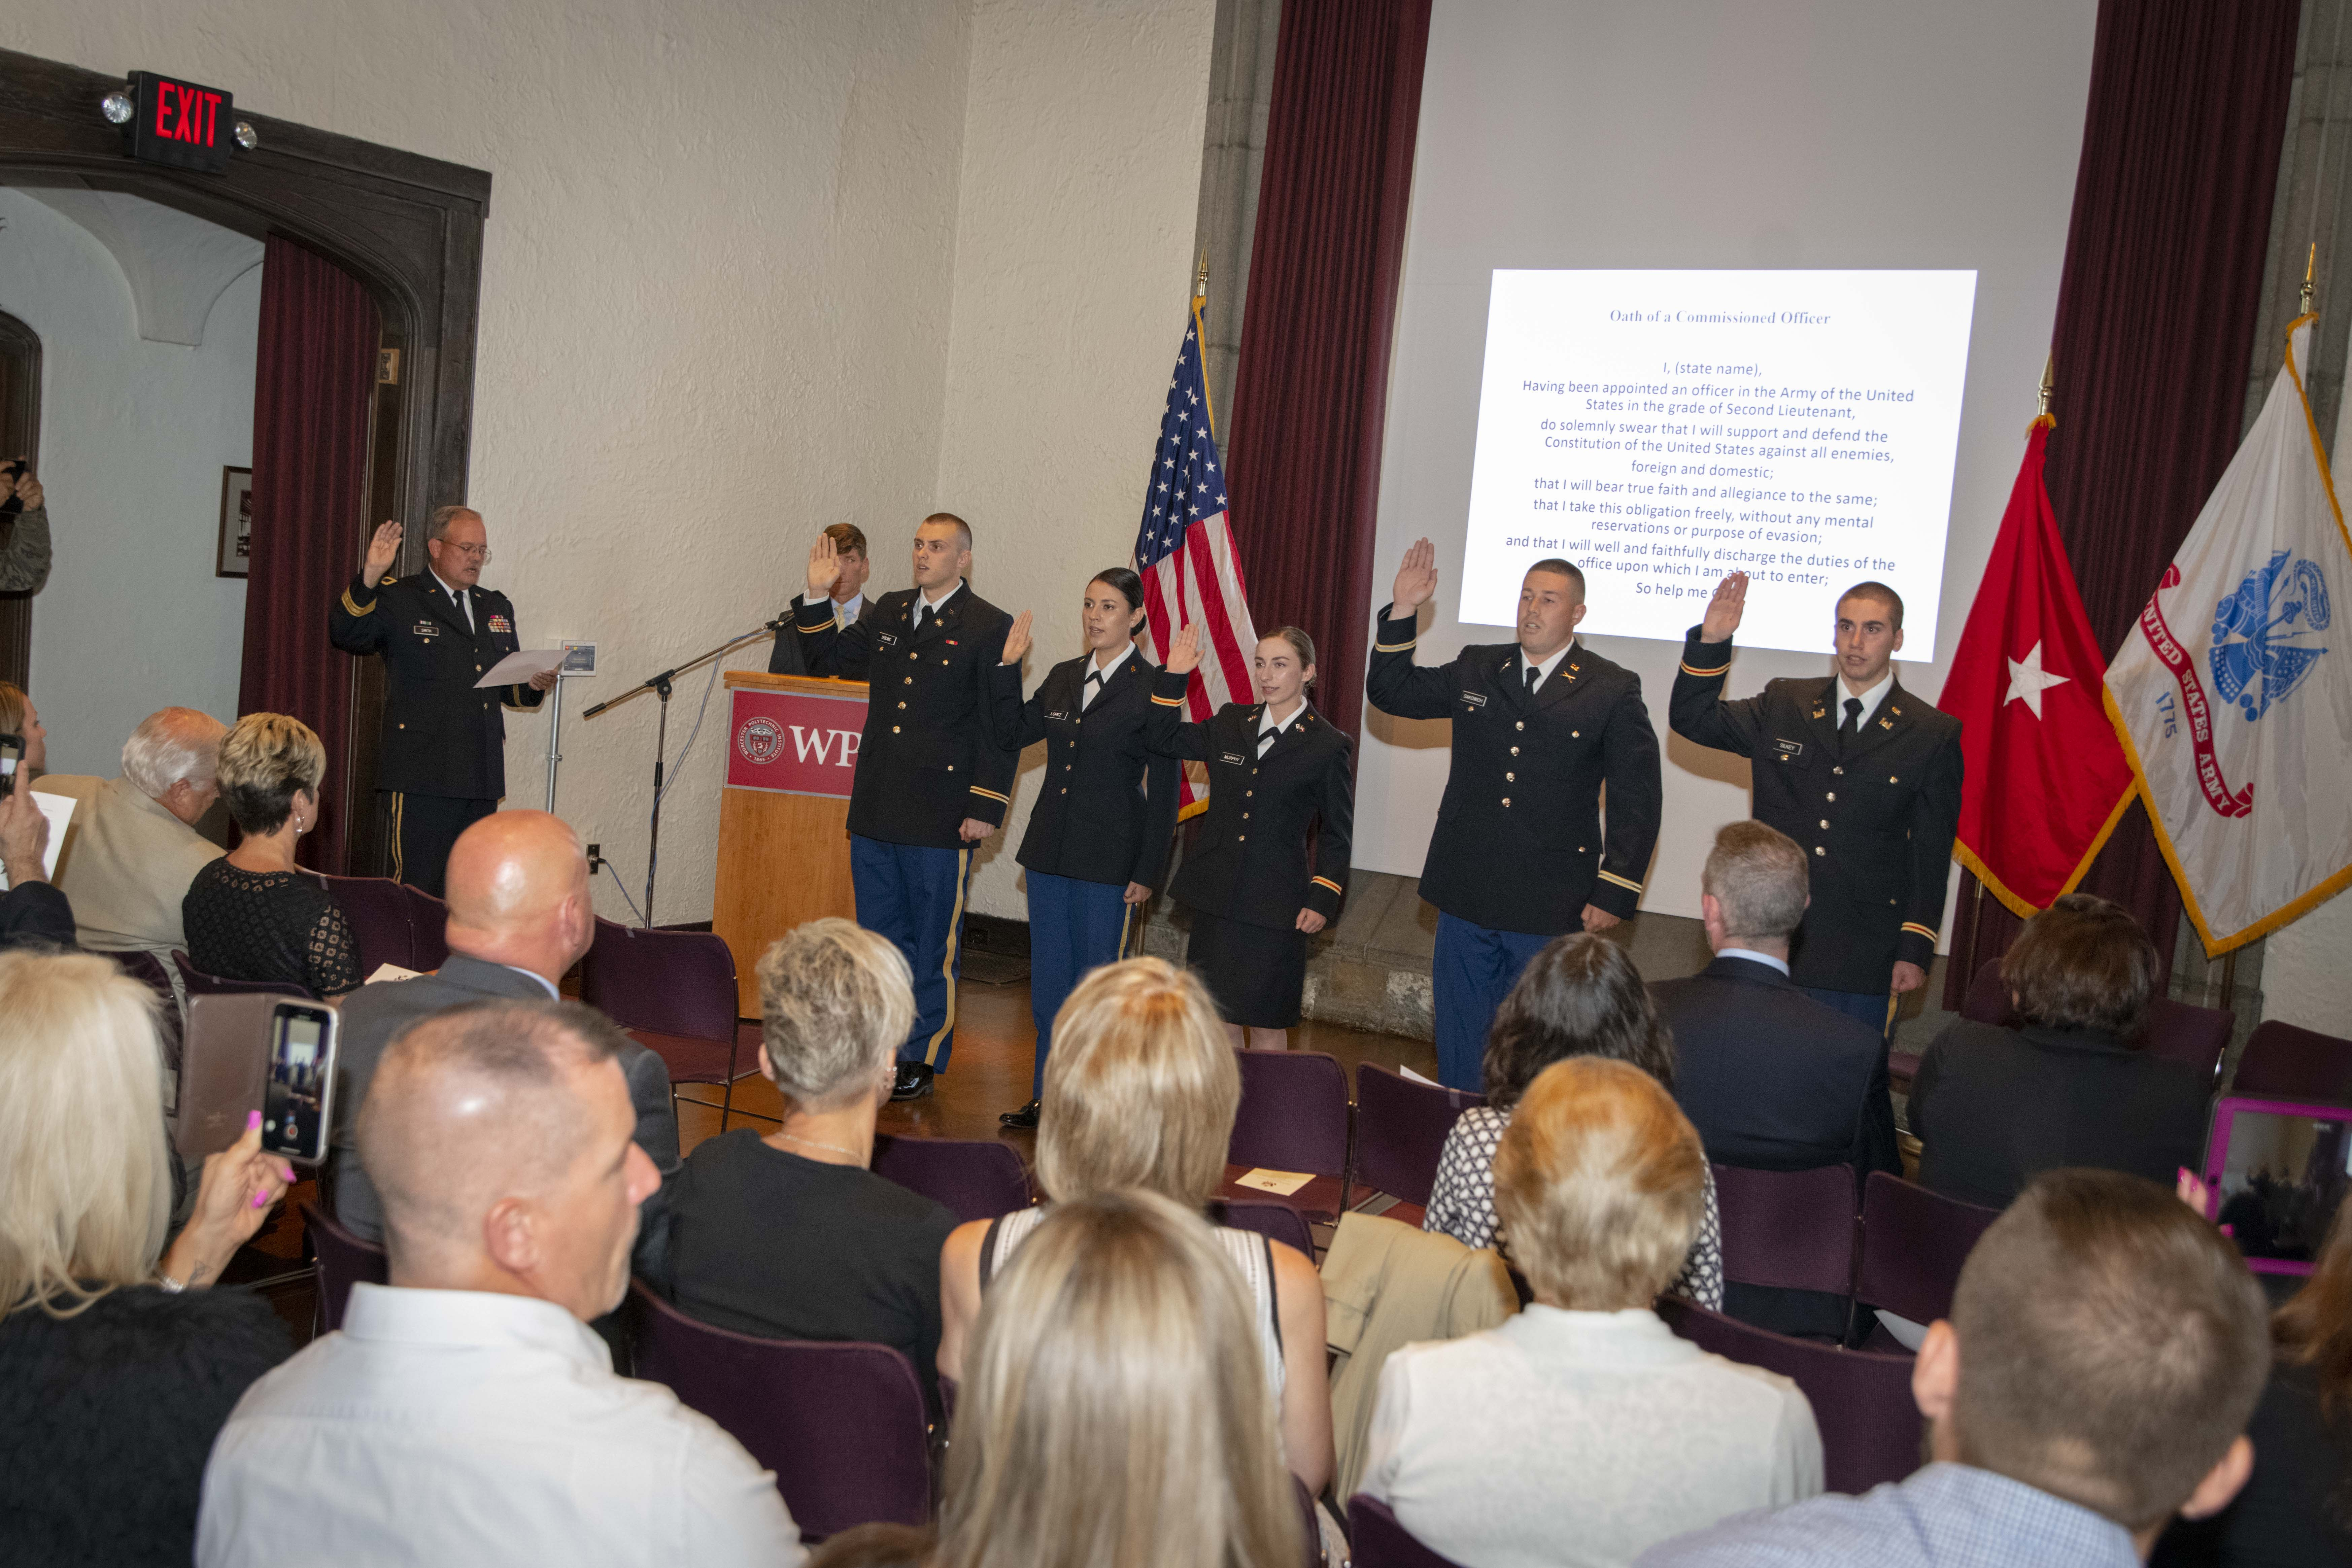 Newly commissioned ROTC cadets in Higgins House during their commissioning ceremony.